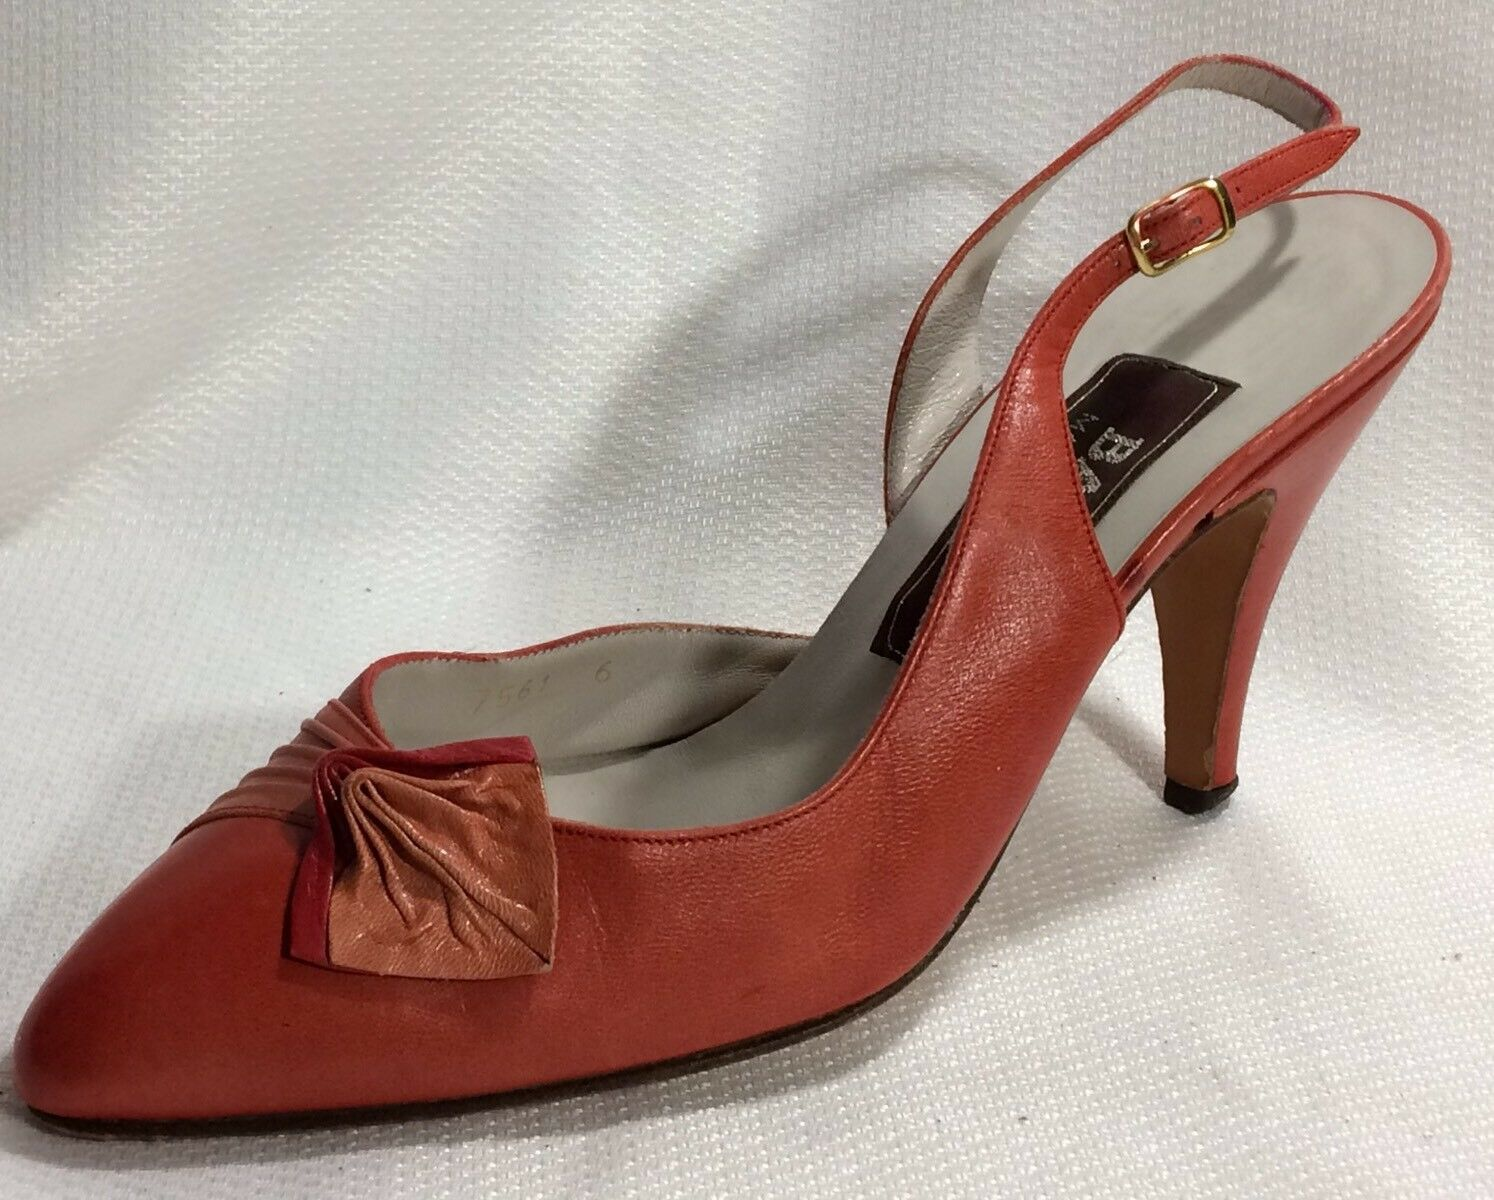 Bally  rot Orange Leather Slingback Pump Heels damen 6 M Pointed Toe schuhe